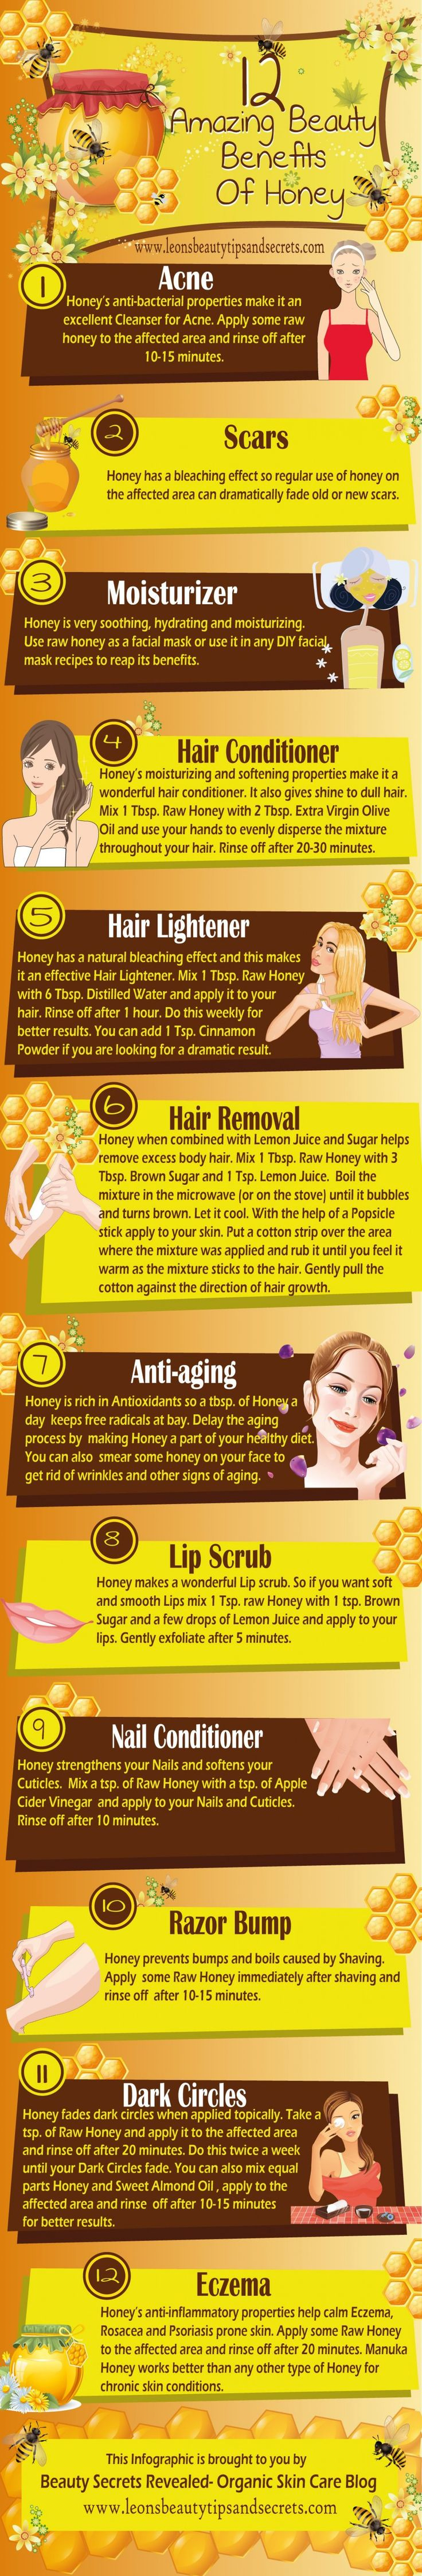 See the amazing benefits of honey!  It's fantastic!